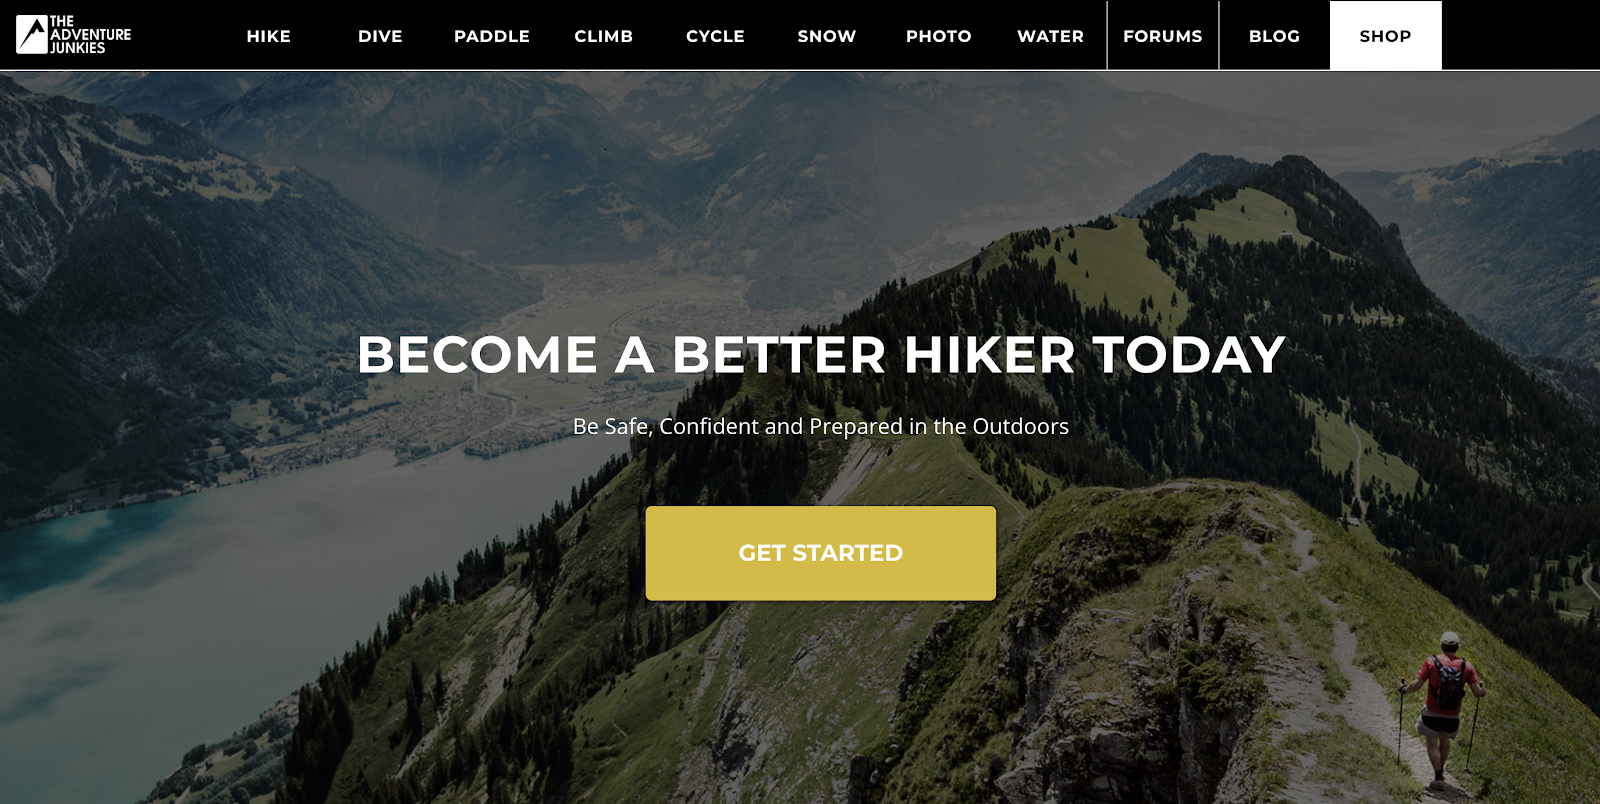 Adventure Junkies Homepage Screenshot (and Blog Niche Example)